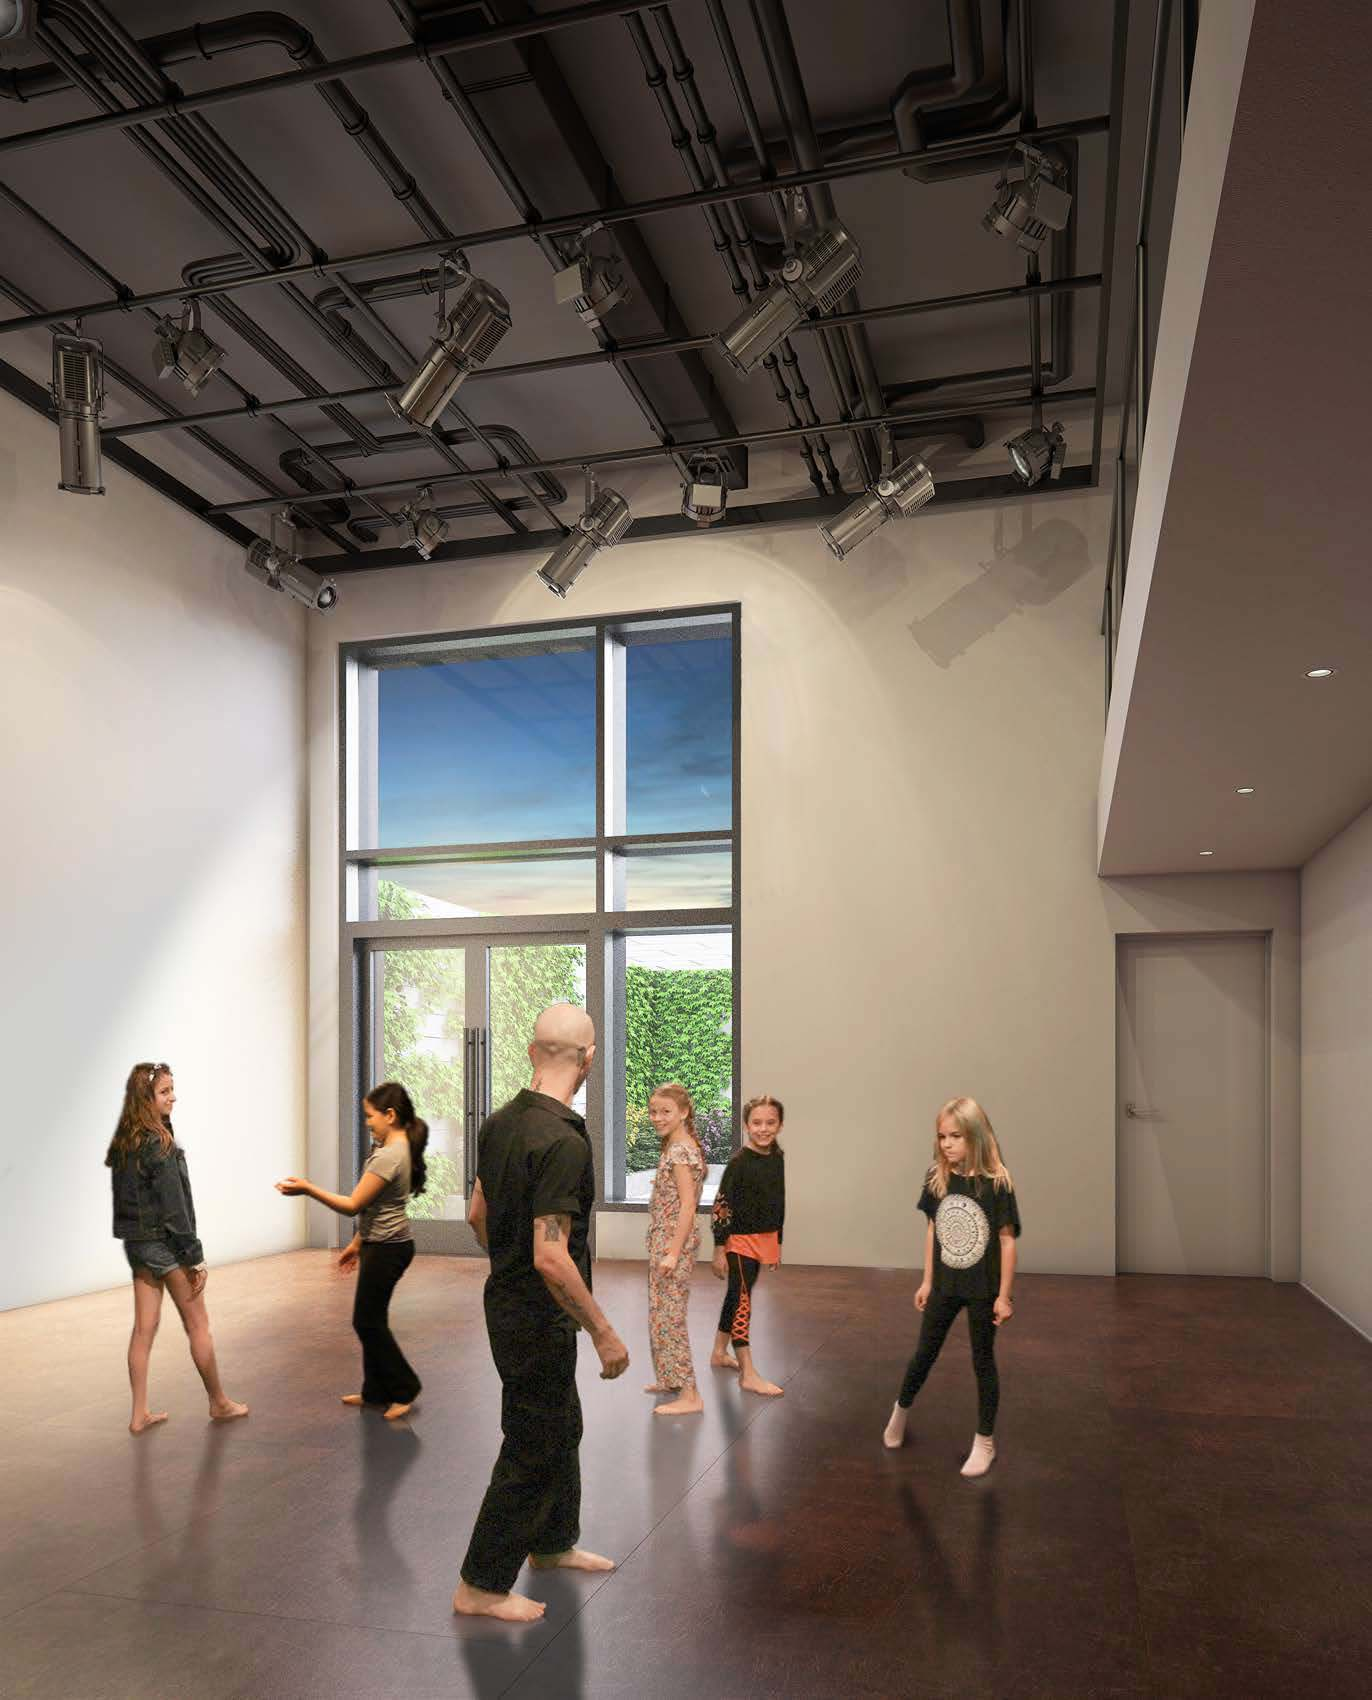 The new flex space at 74a East 4th Street for daytime workshops